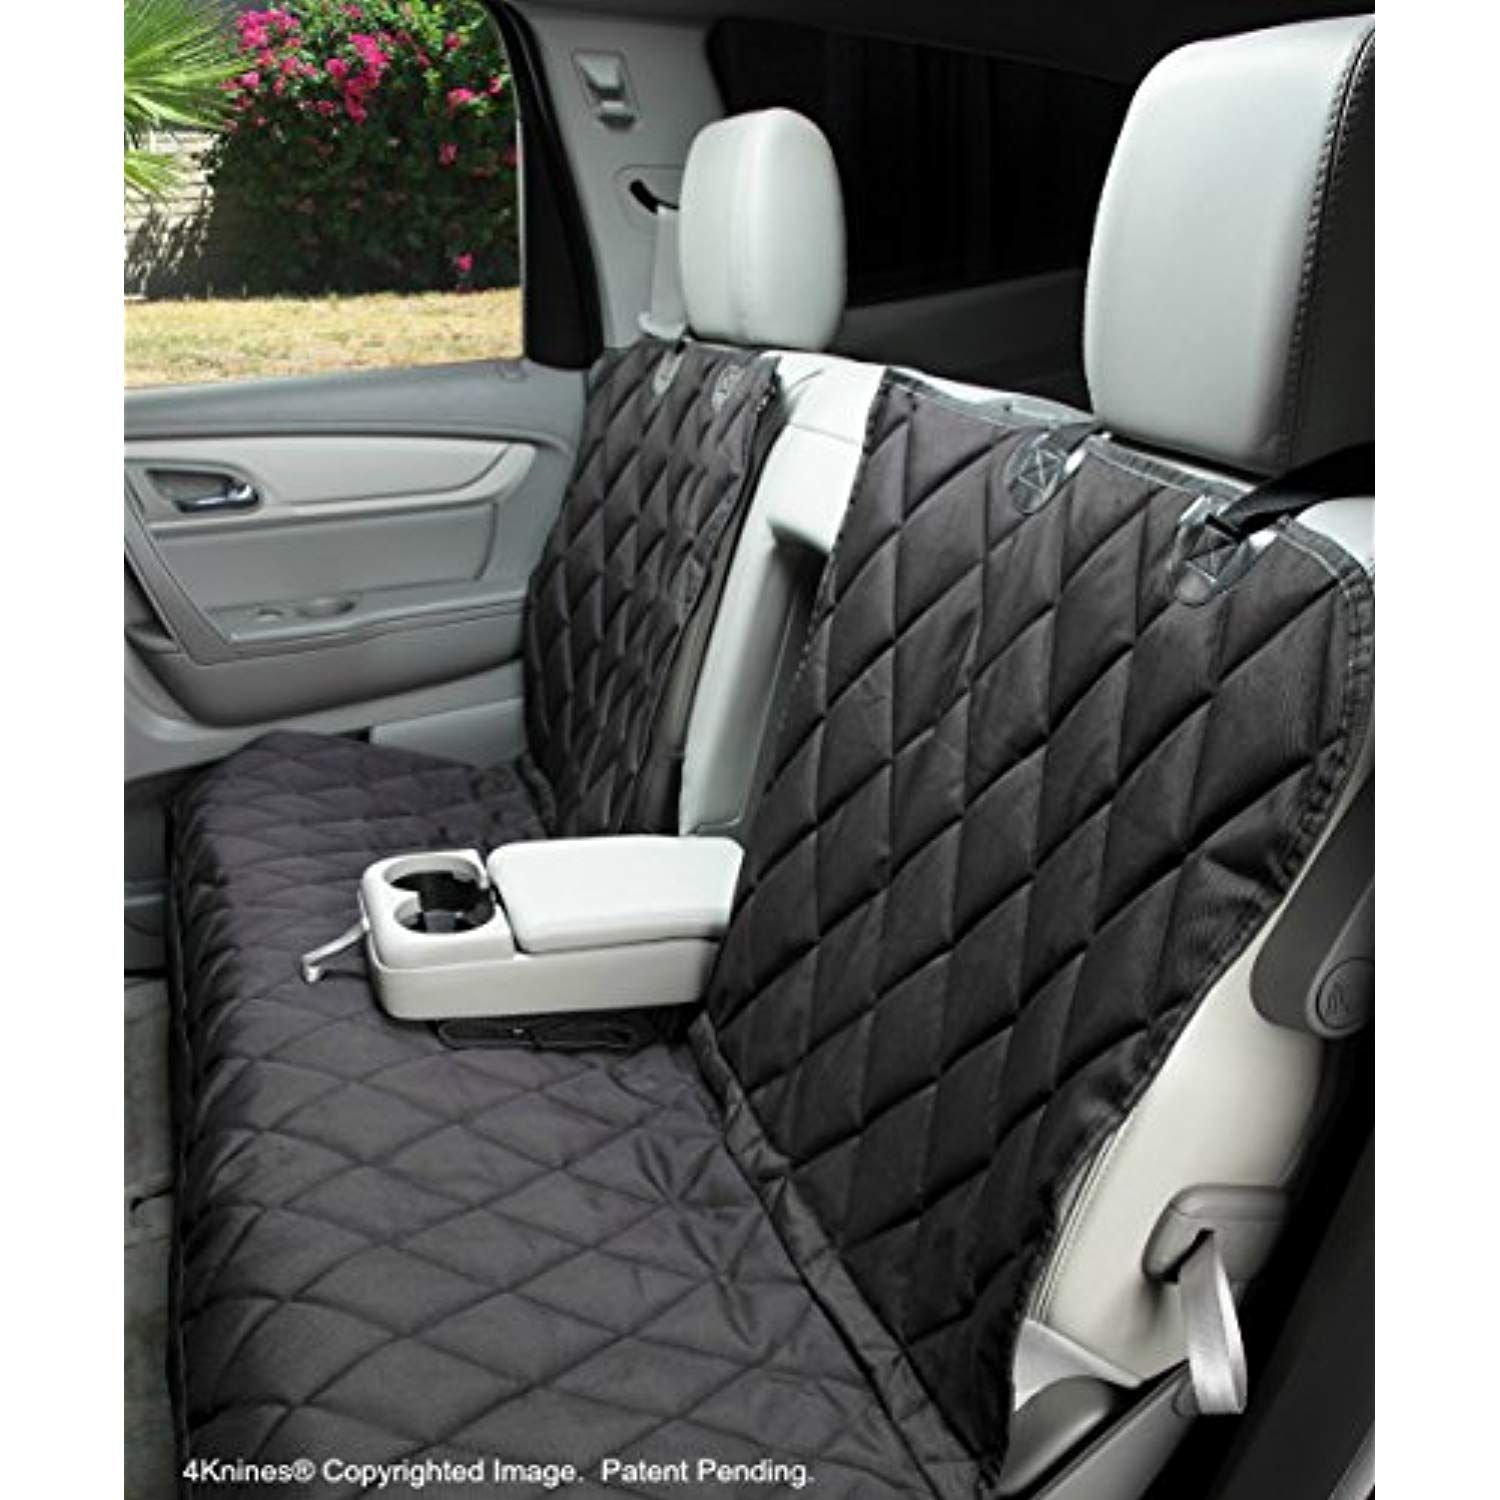 Sensational 4Knines Dog Seat Cover Without Hammock For Fold Down Rear Uwap Interior Chair Design Uwaporg